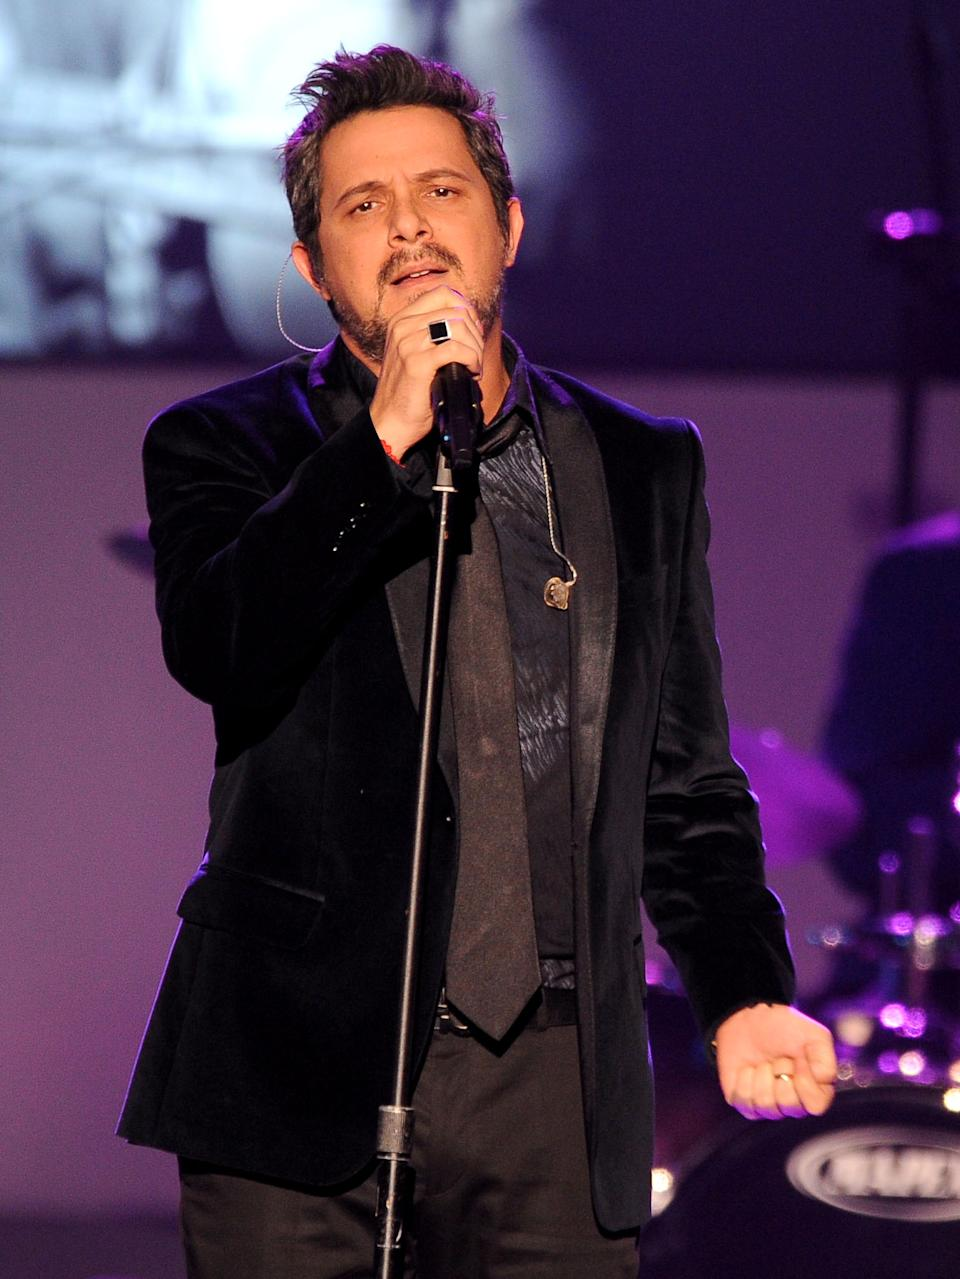 Alejandro Sanz performs at the 2012 Latin Recording Academy Person of the Year Tribute to Caetano Veloso at the MGM Grand Garden Arena on Wednesday, Nov. 14, 2012, in Las Vegas. (Photo by Powers Imagery/Invision/AP)